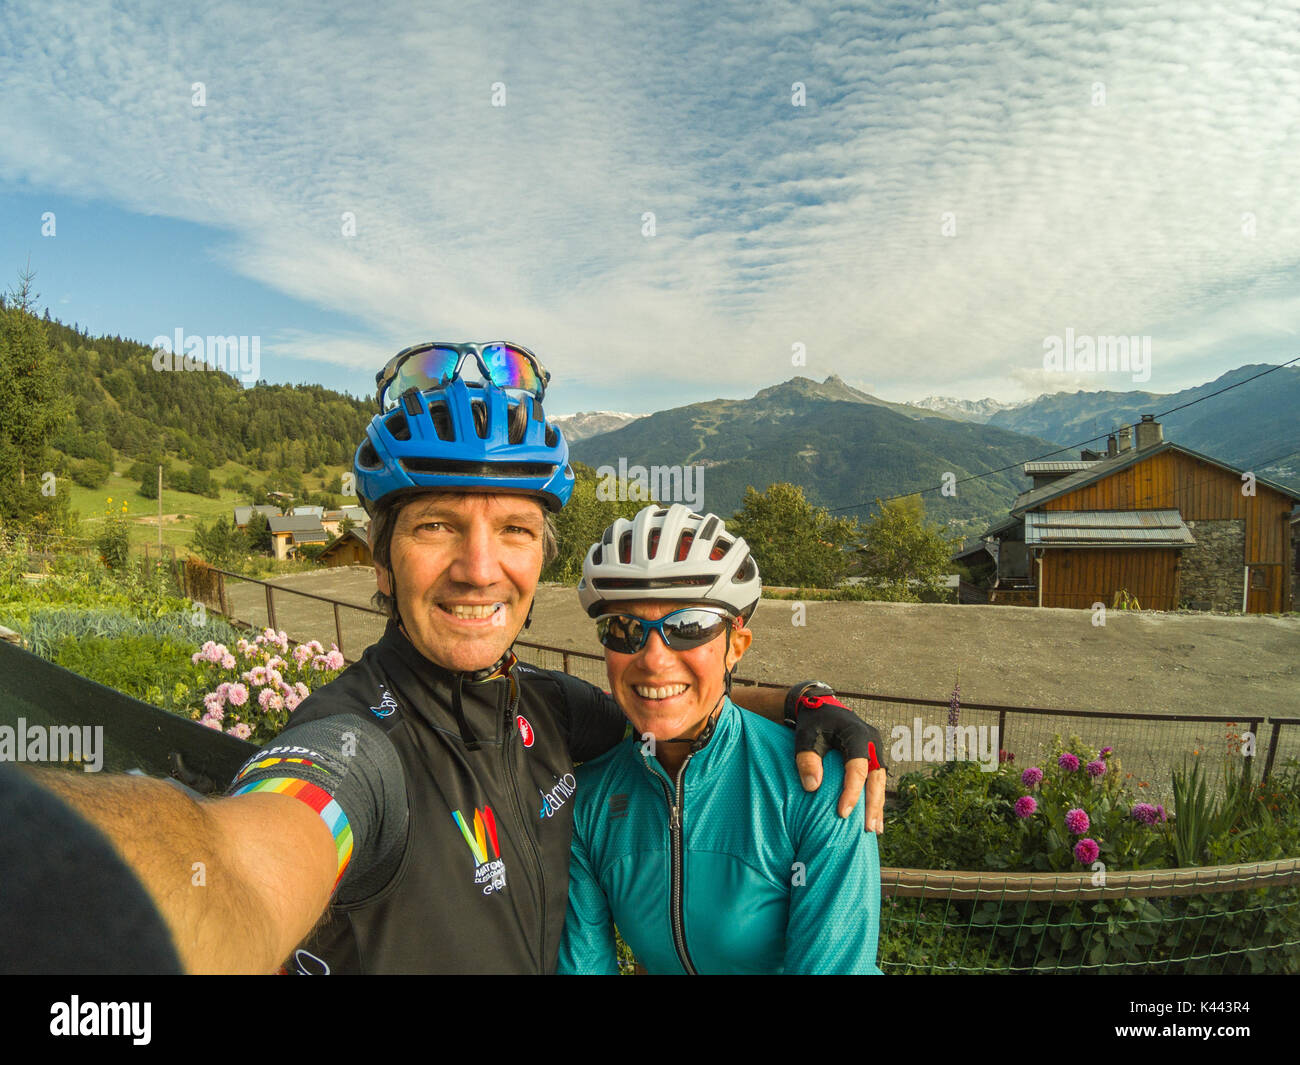 Cycling Mountains Alps Couple Cyclists Selfie Bike riding bikewear cycle helmets on sunglasses panoramic landscape view over the valley clouds pattern - Stock Image